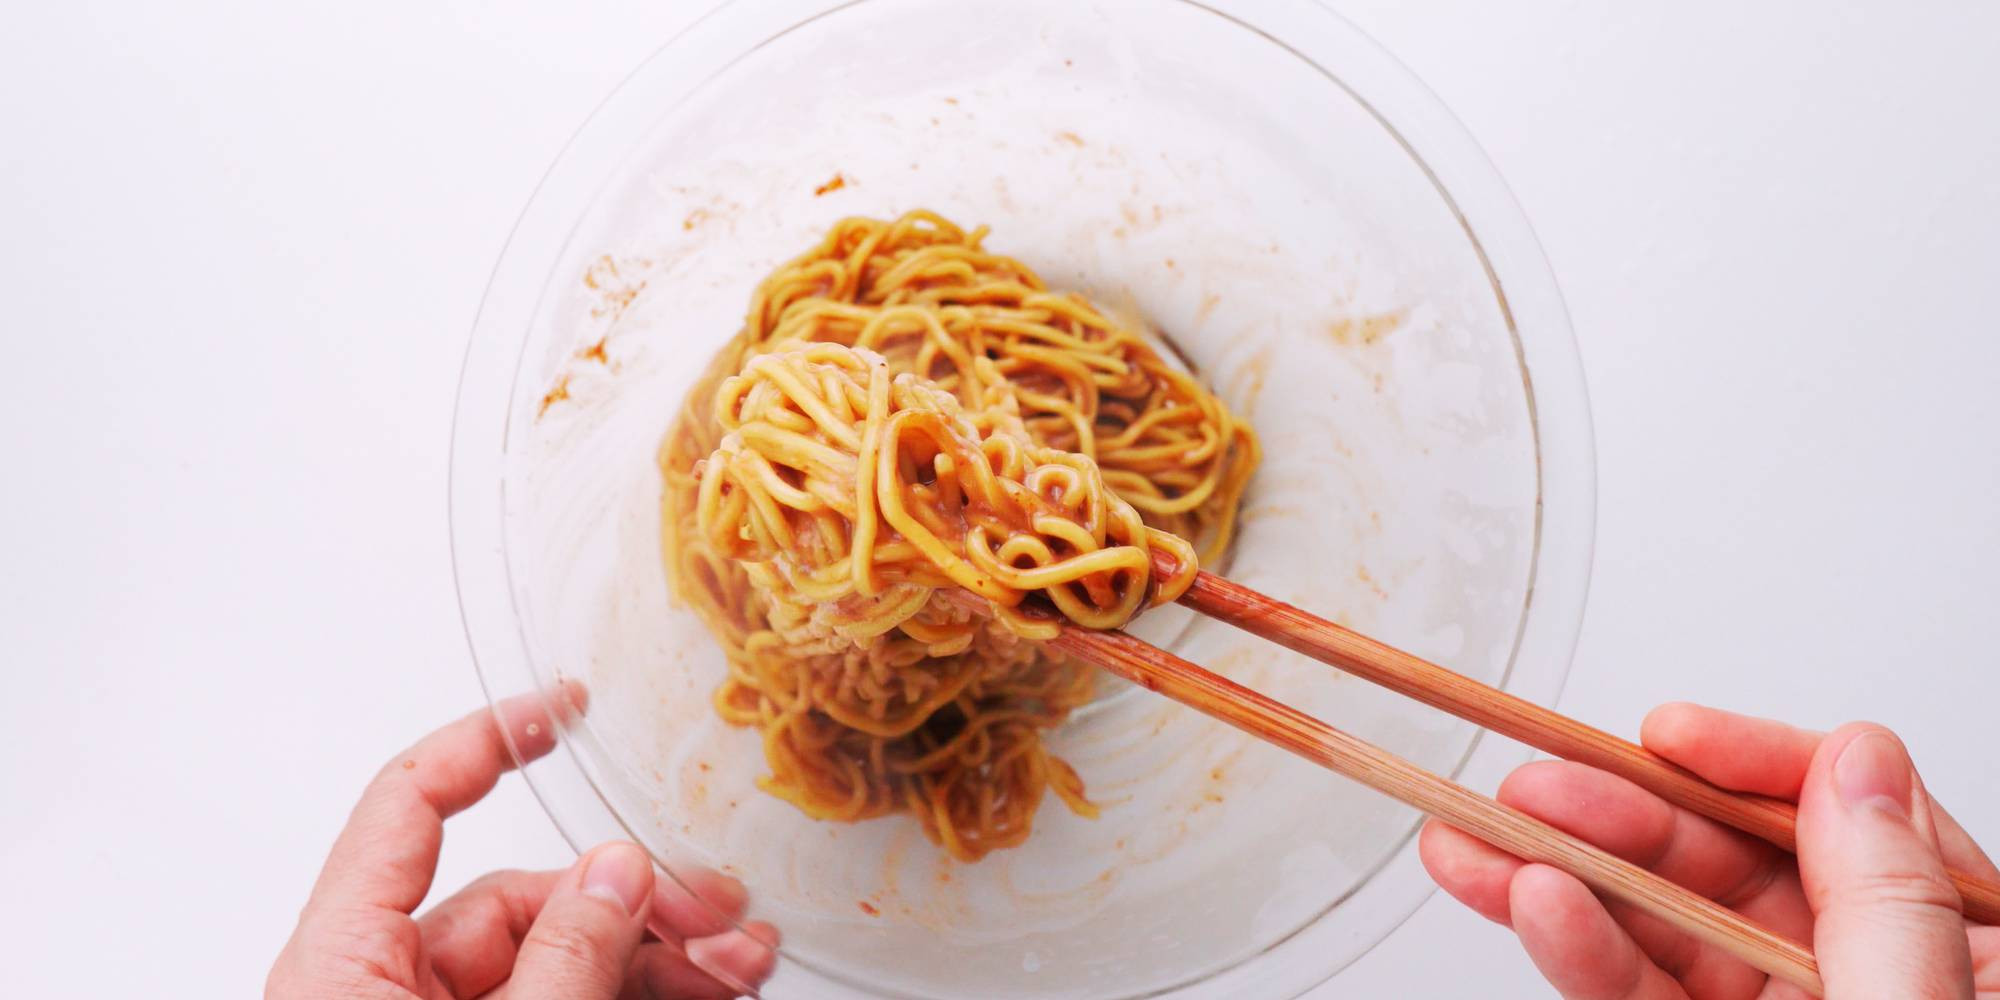 Tossing noodles with garlic sauce.